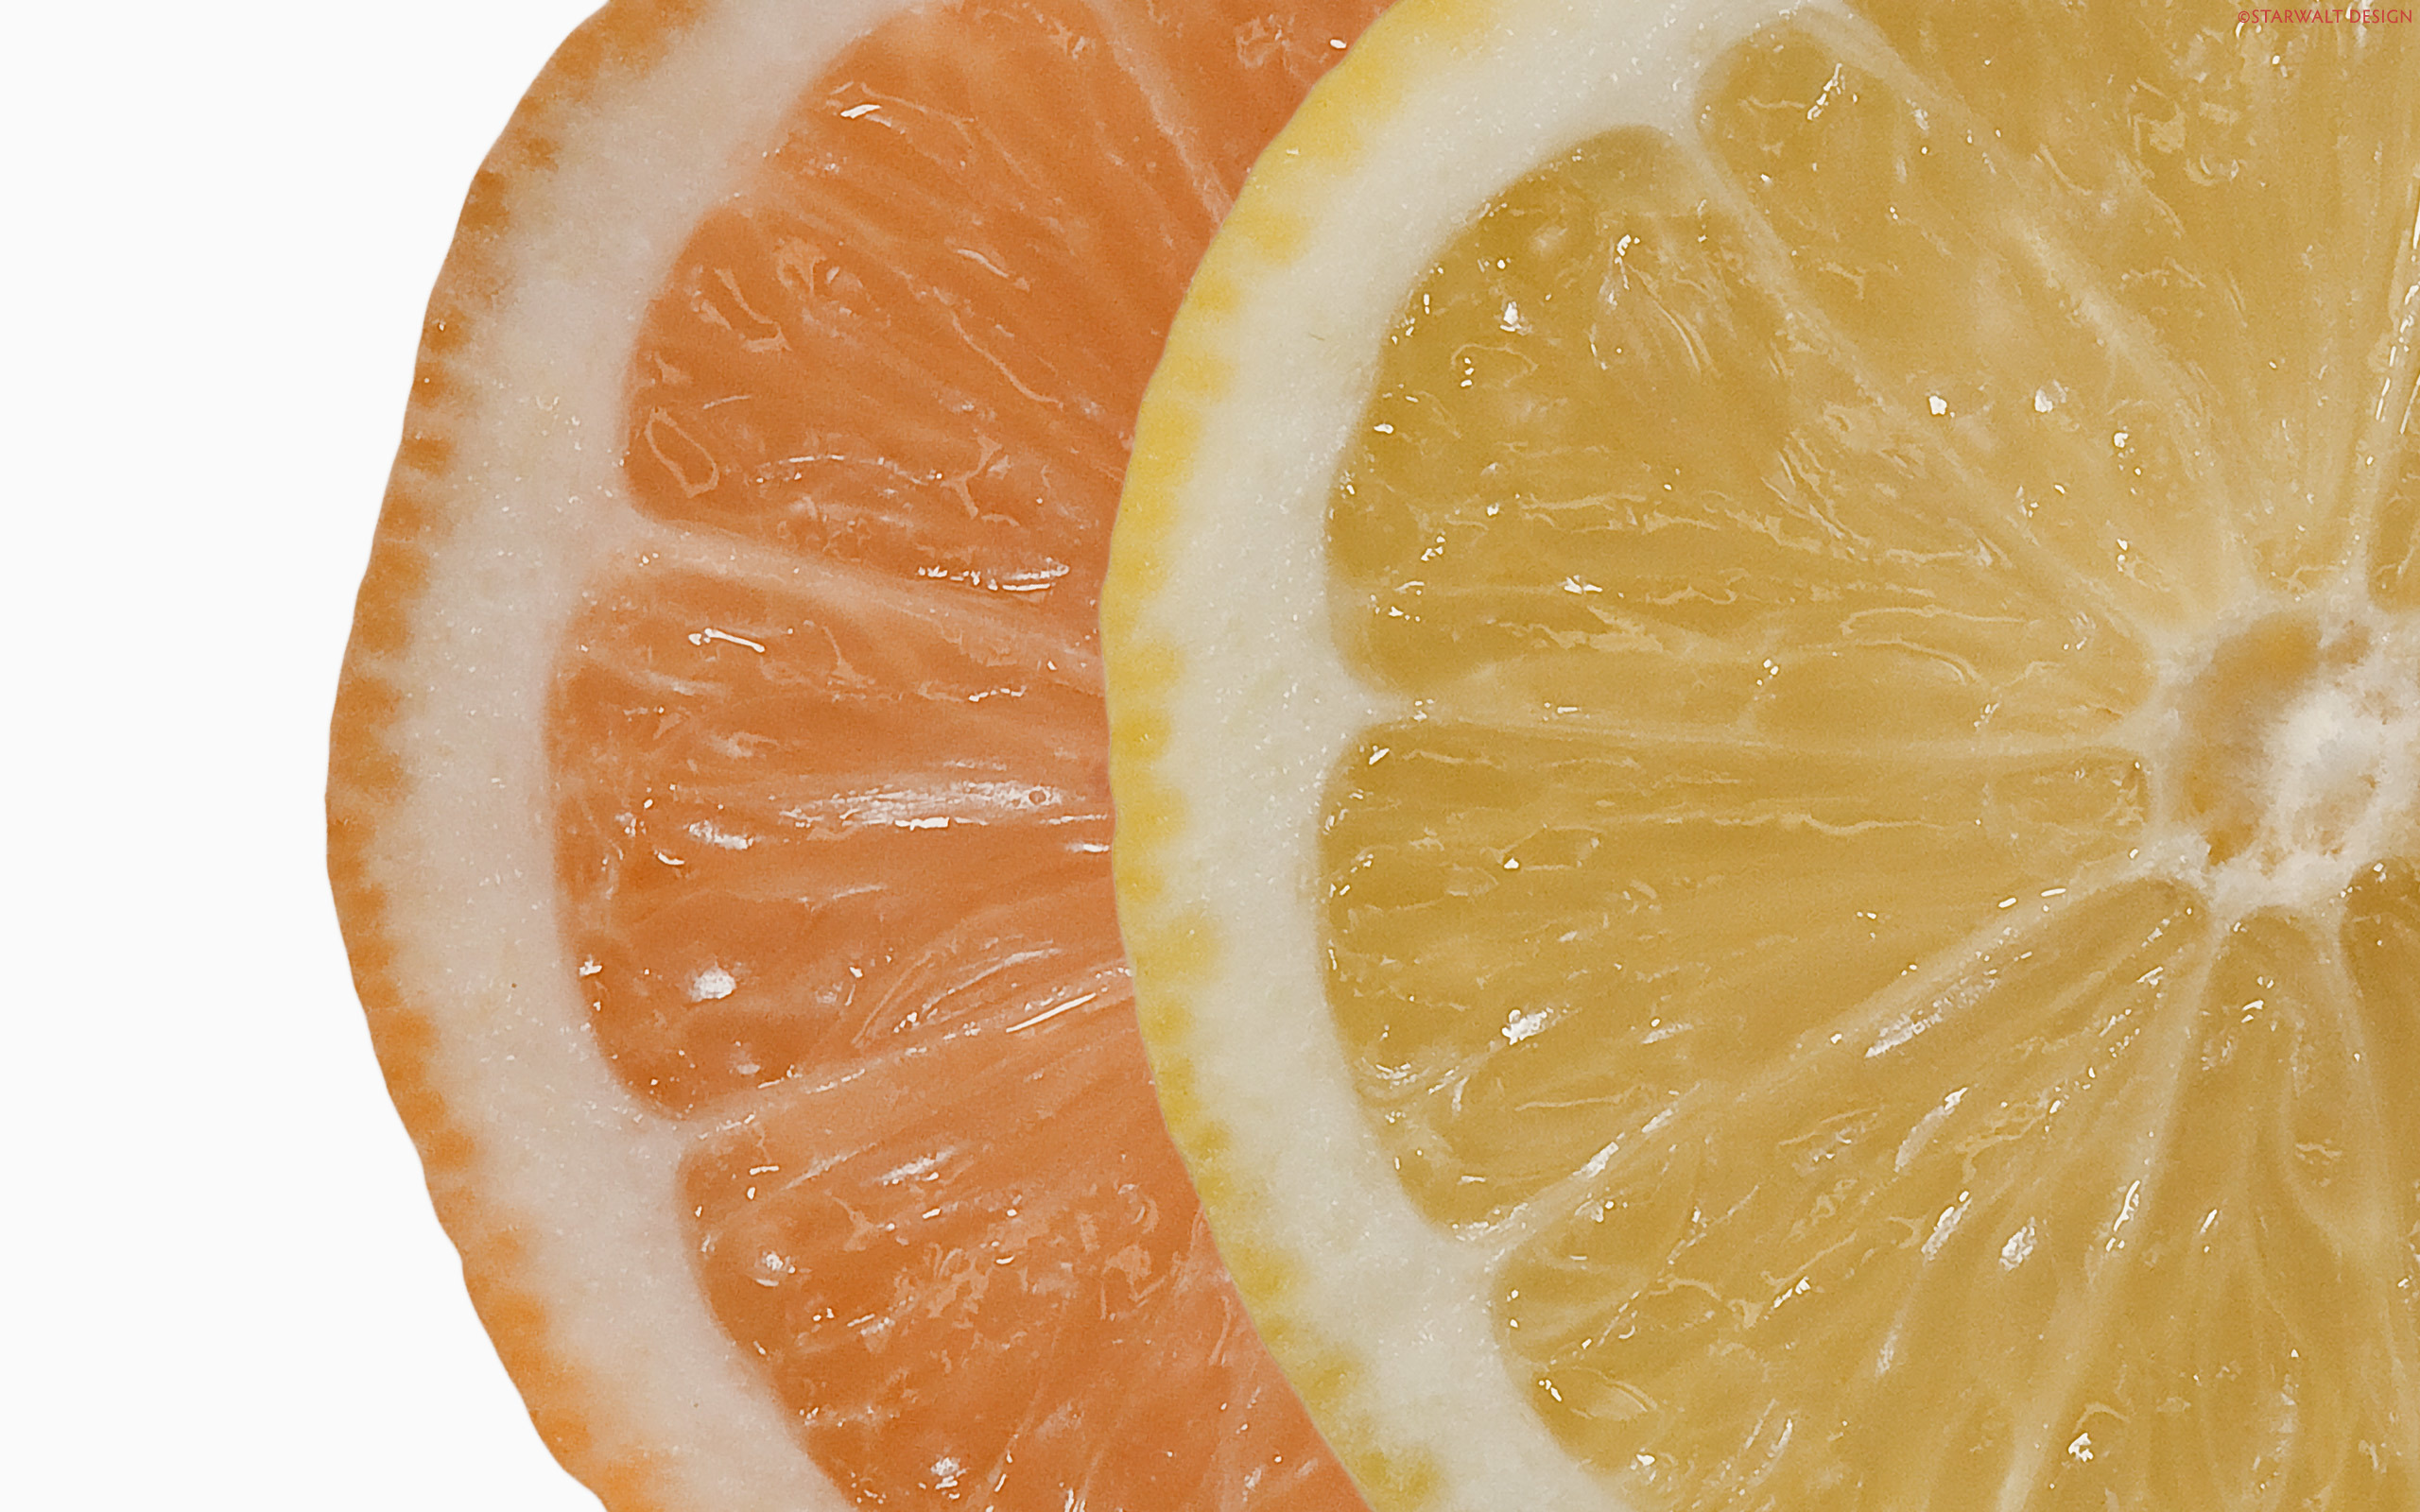 fruits oranges orange slices